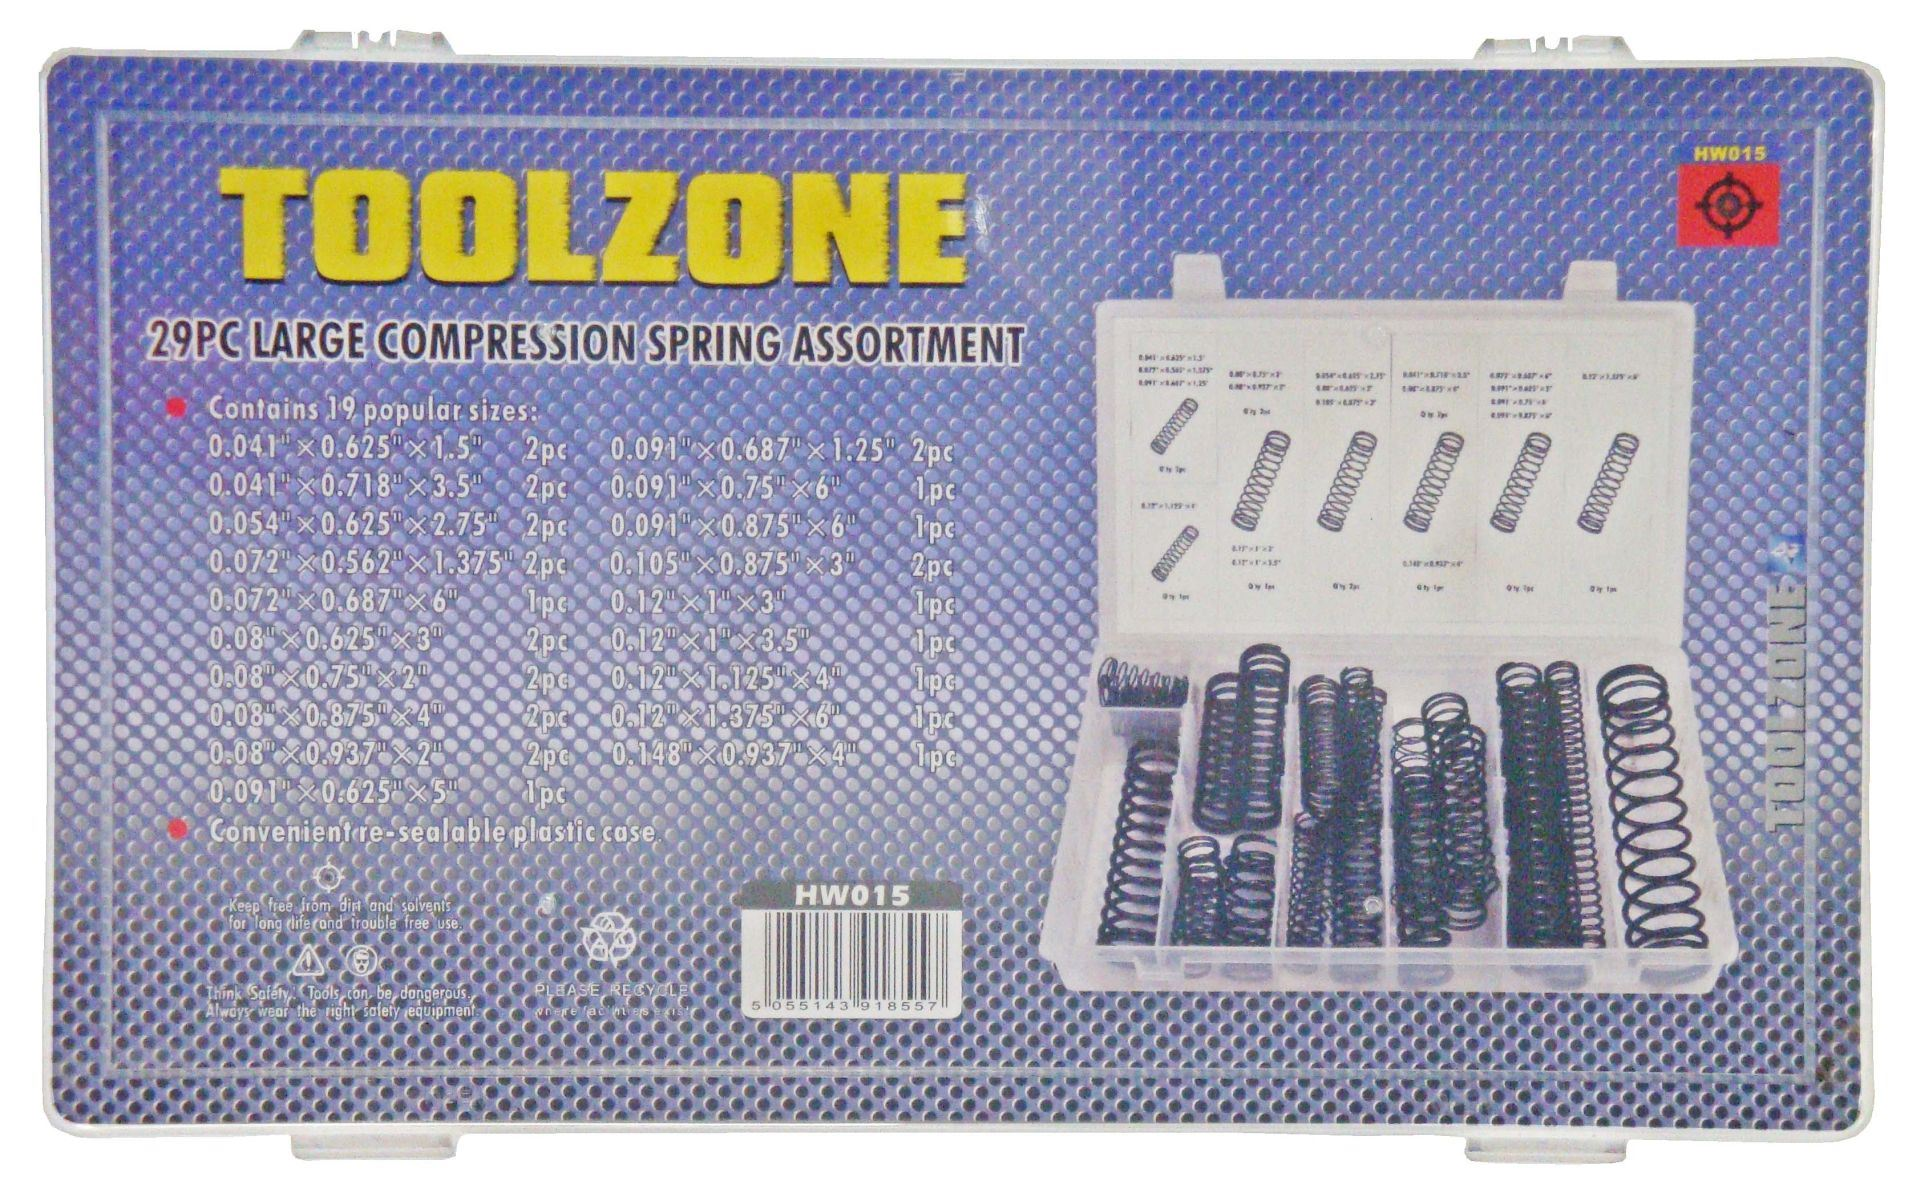 Toolzone 29Pc Large Compression Spring Asst